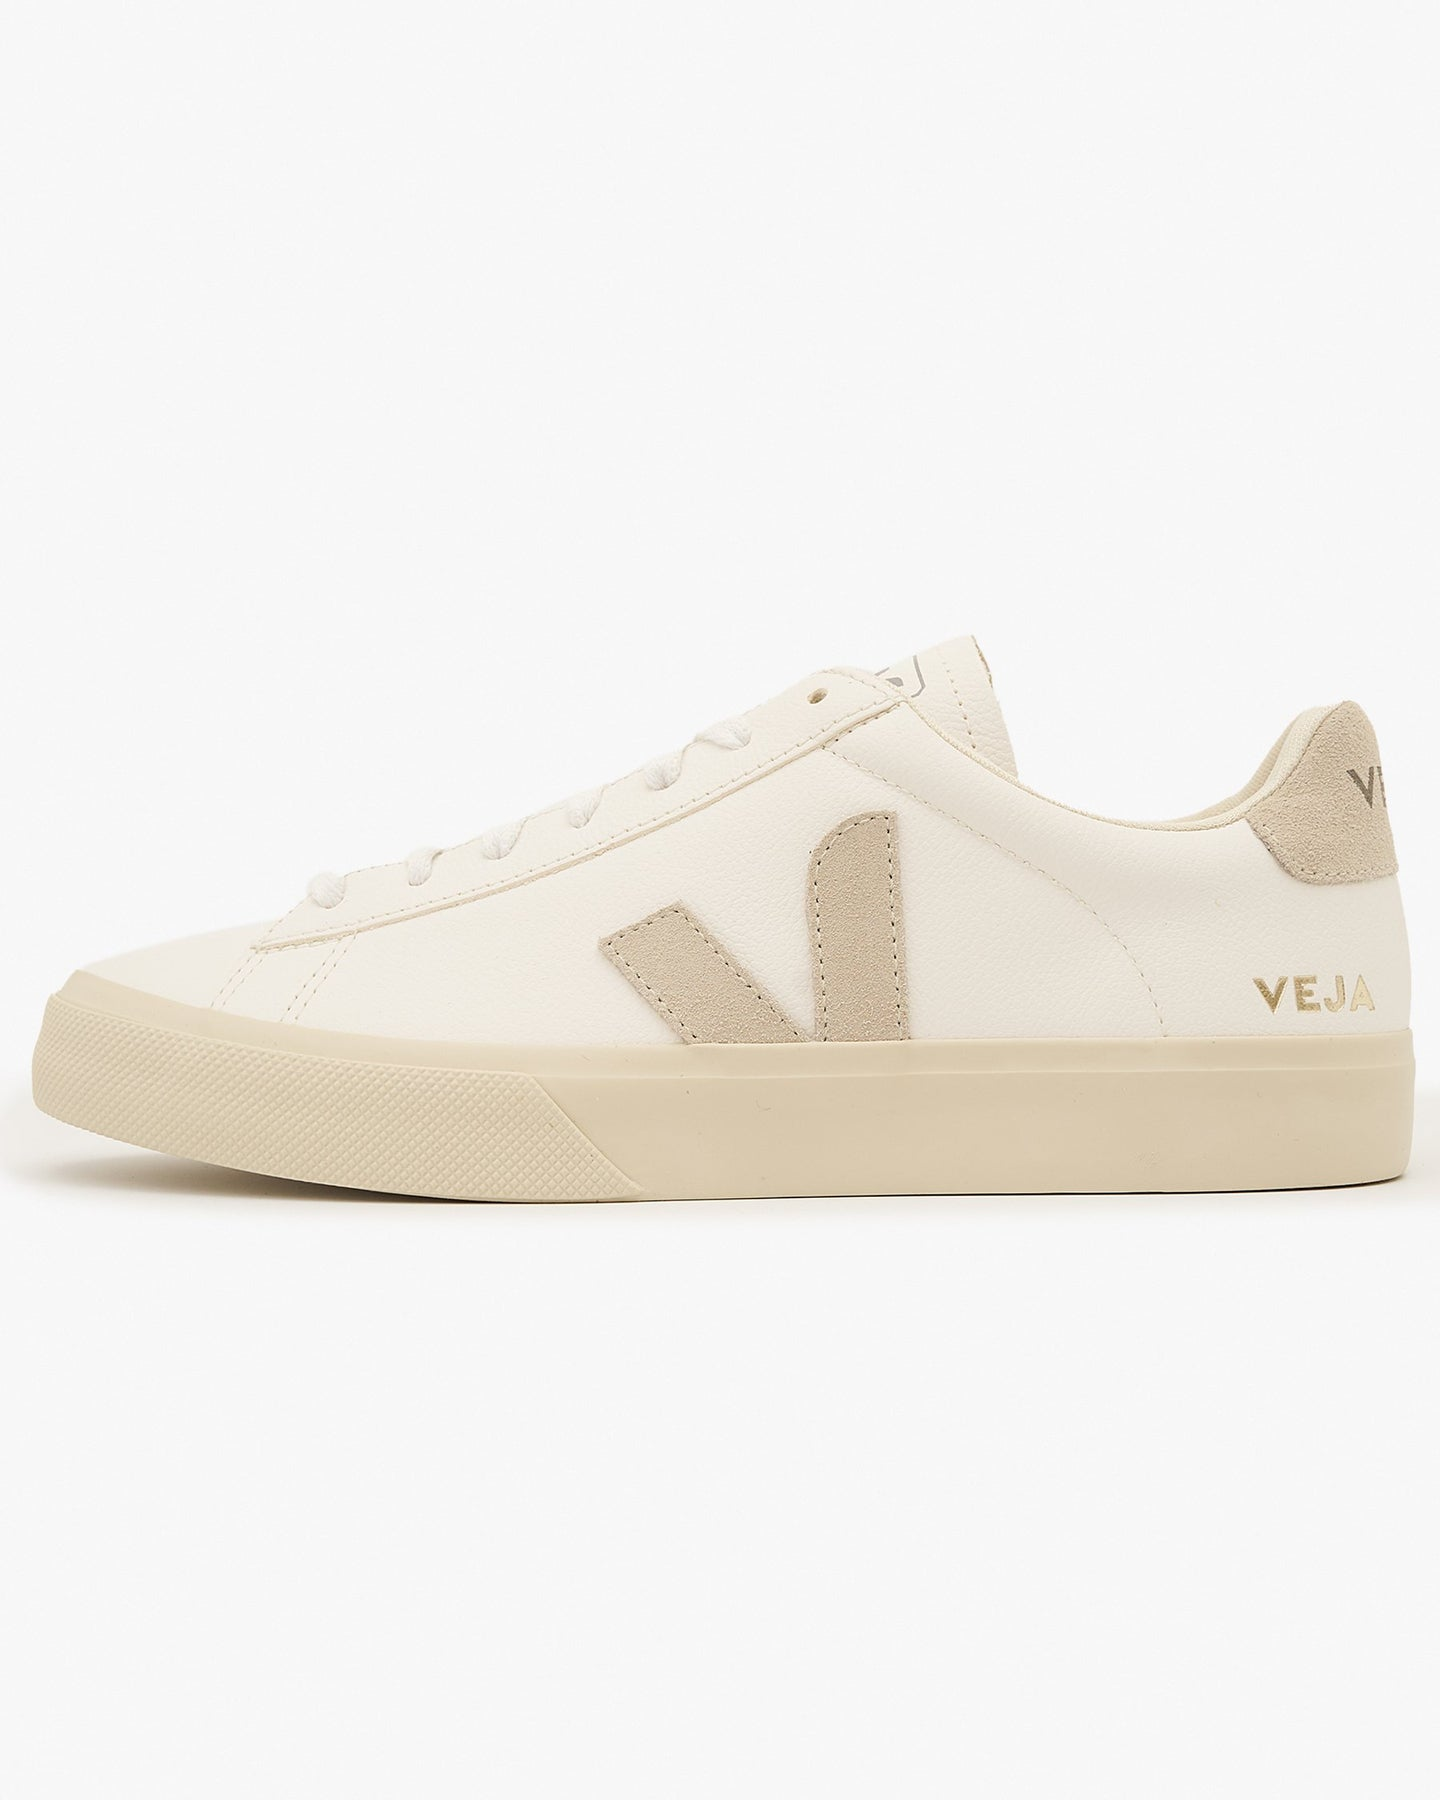 Veja Womens Campo Chromefree Leather Sneakers - Extra White / Natural Suede UK 4 CPW0524294 Veja Trainers